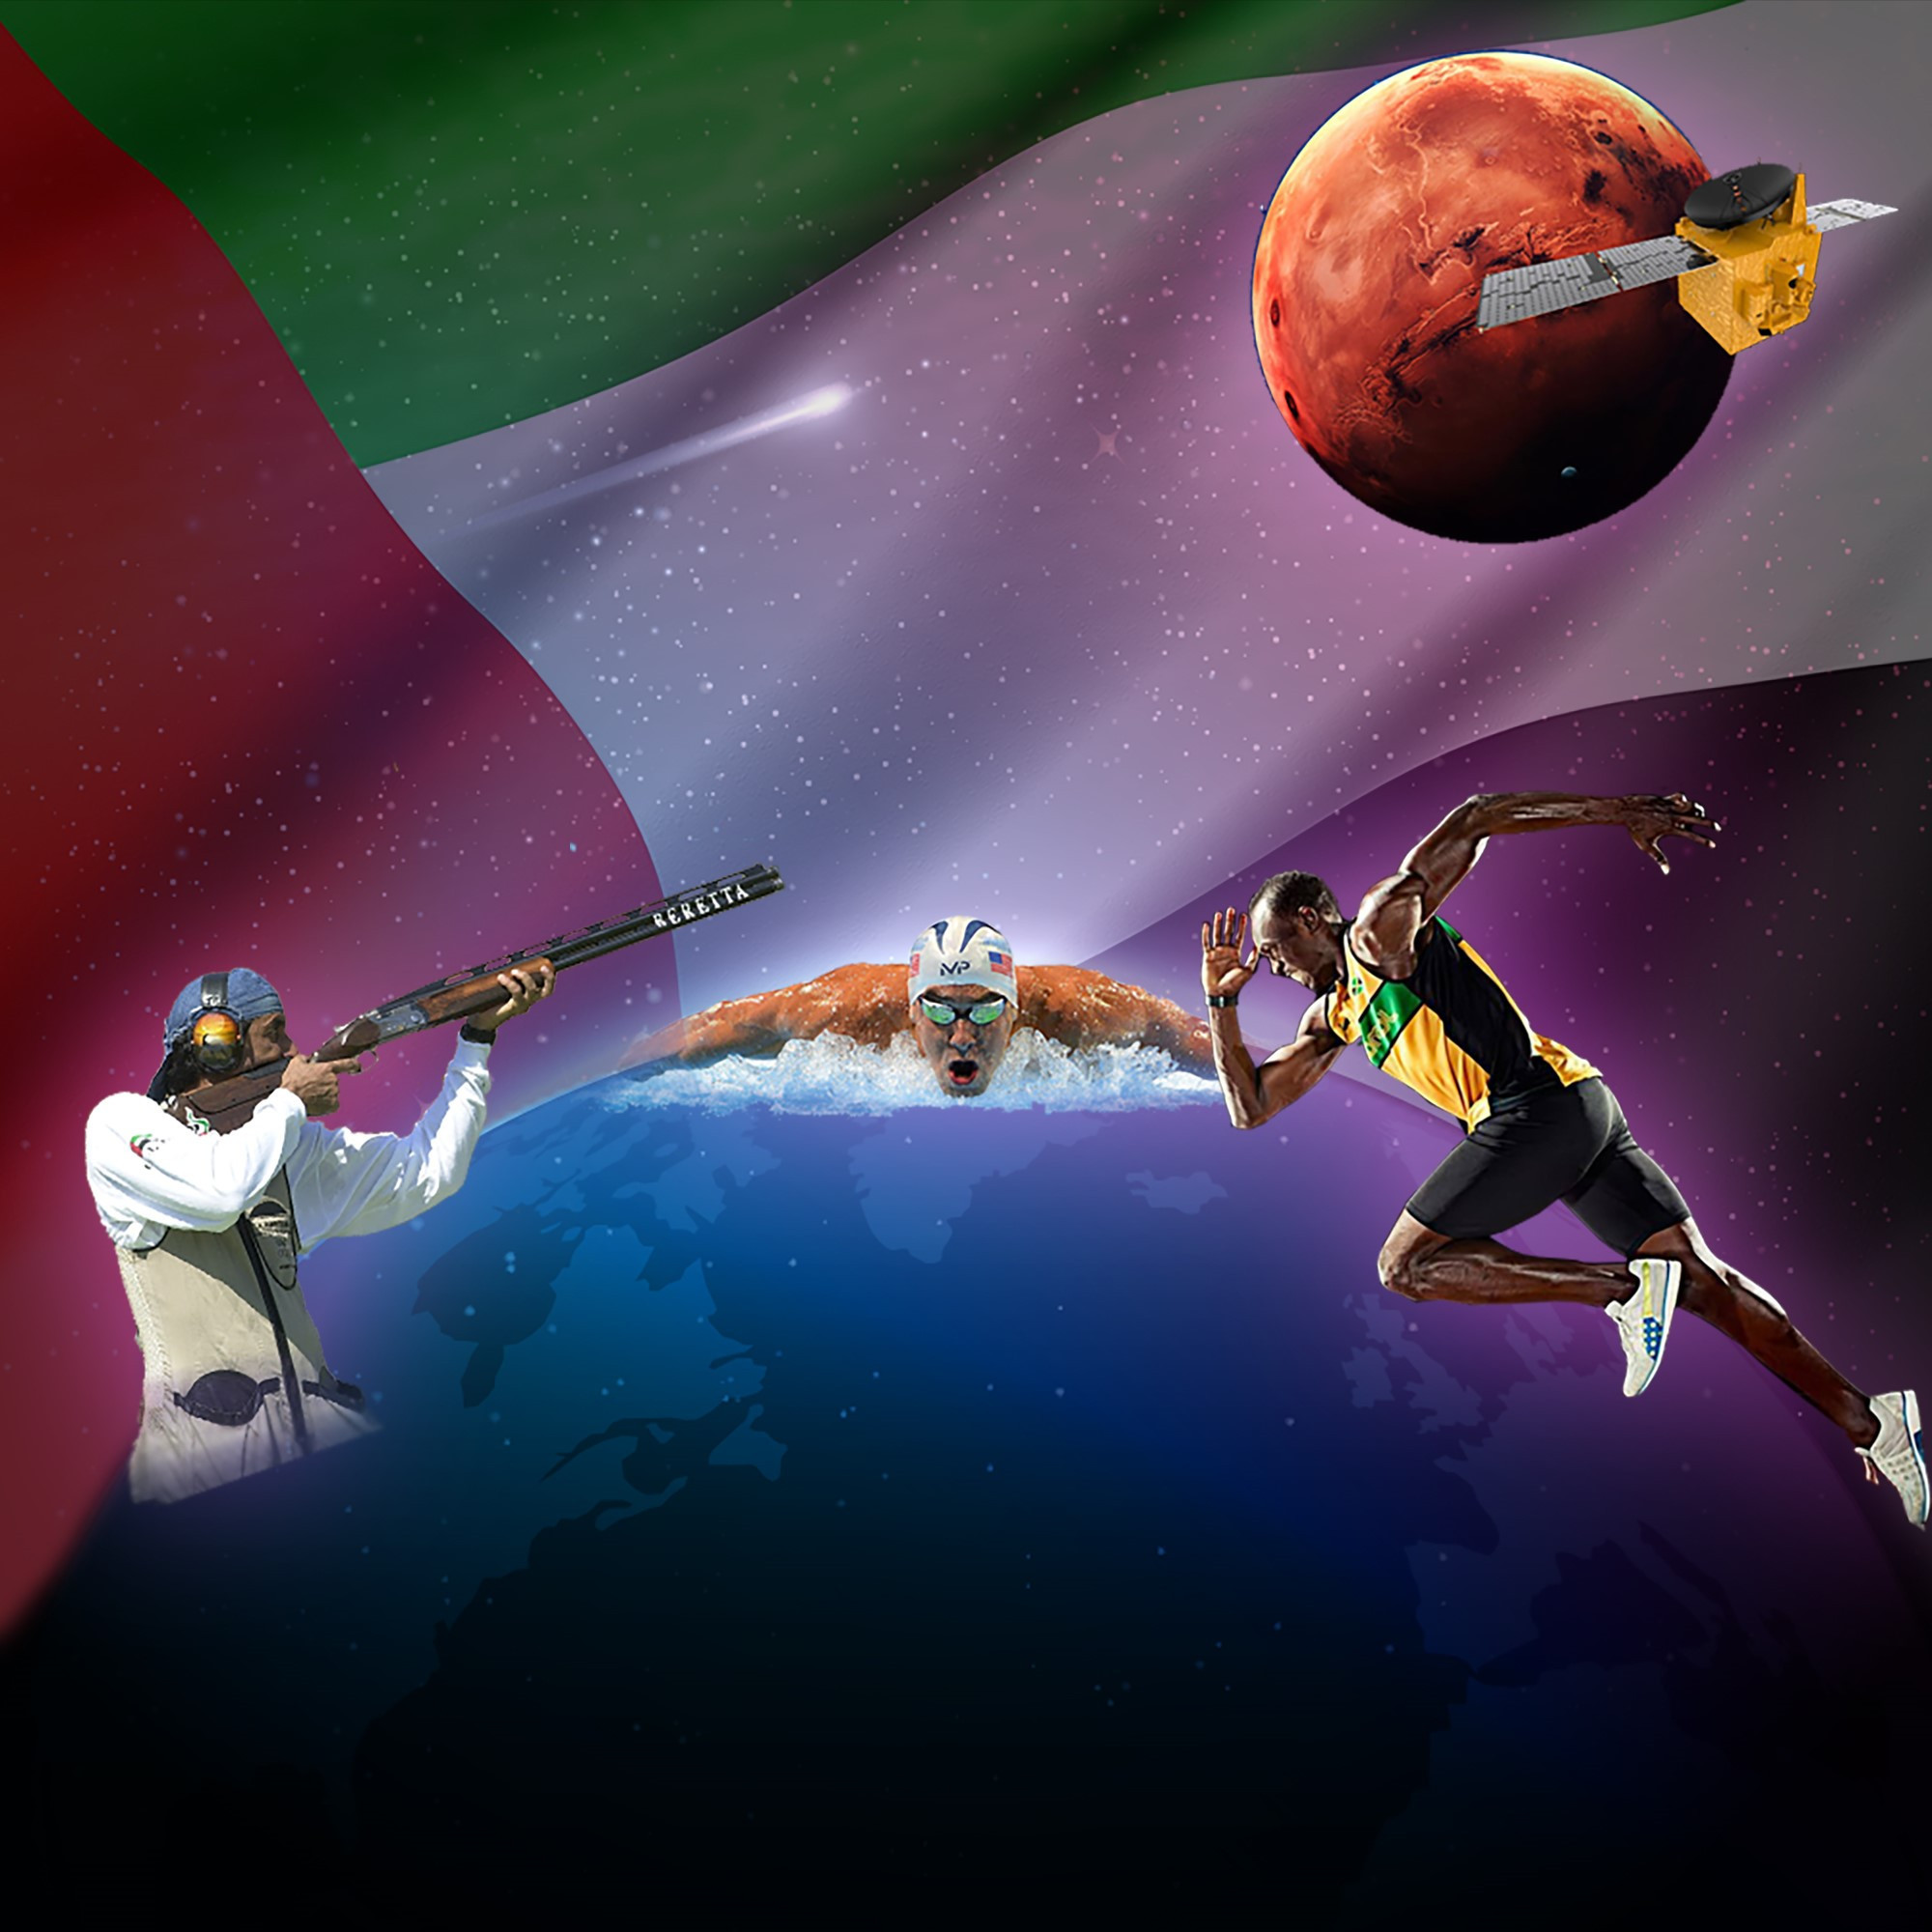 UAE NOC celebrates launch of space mission to Mars